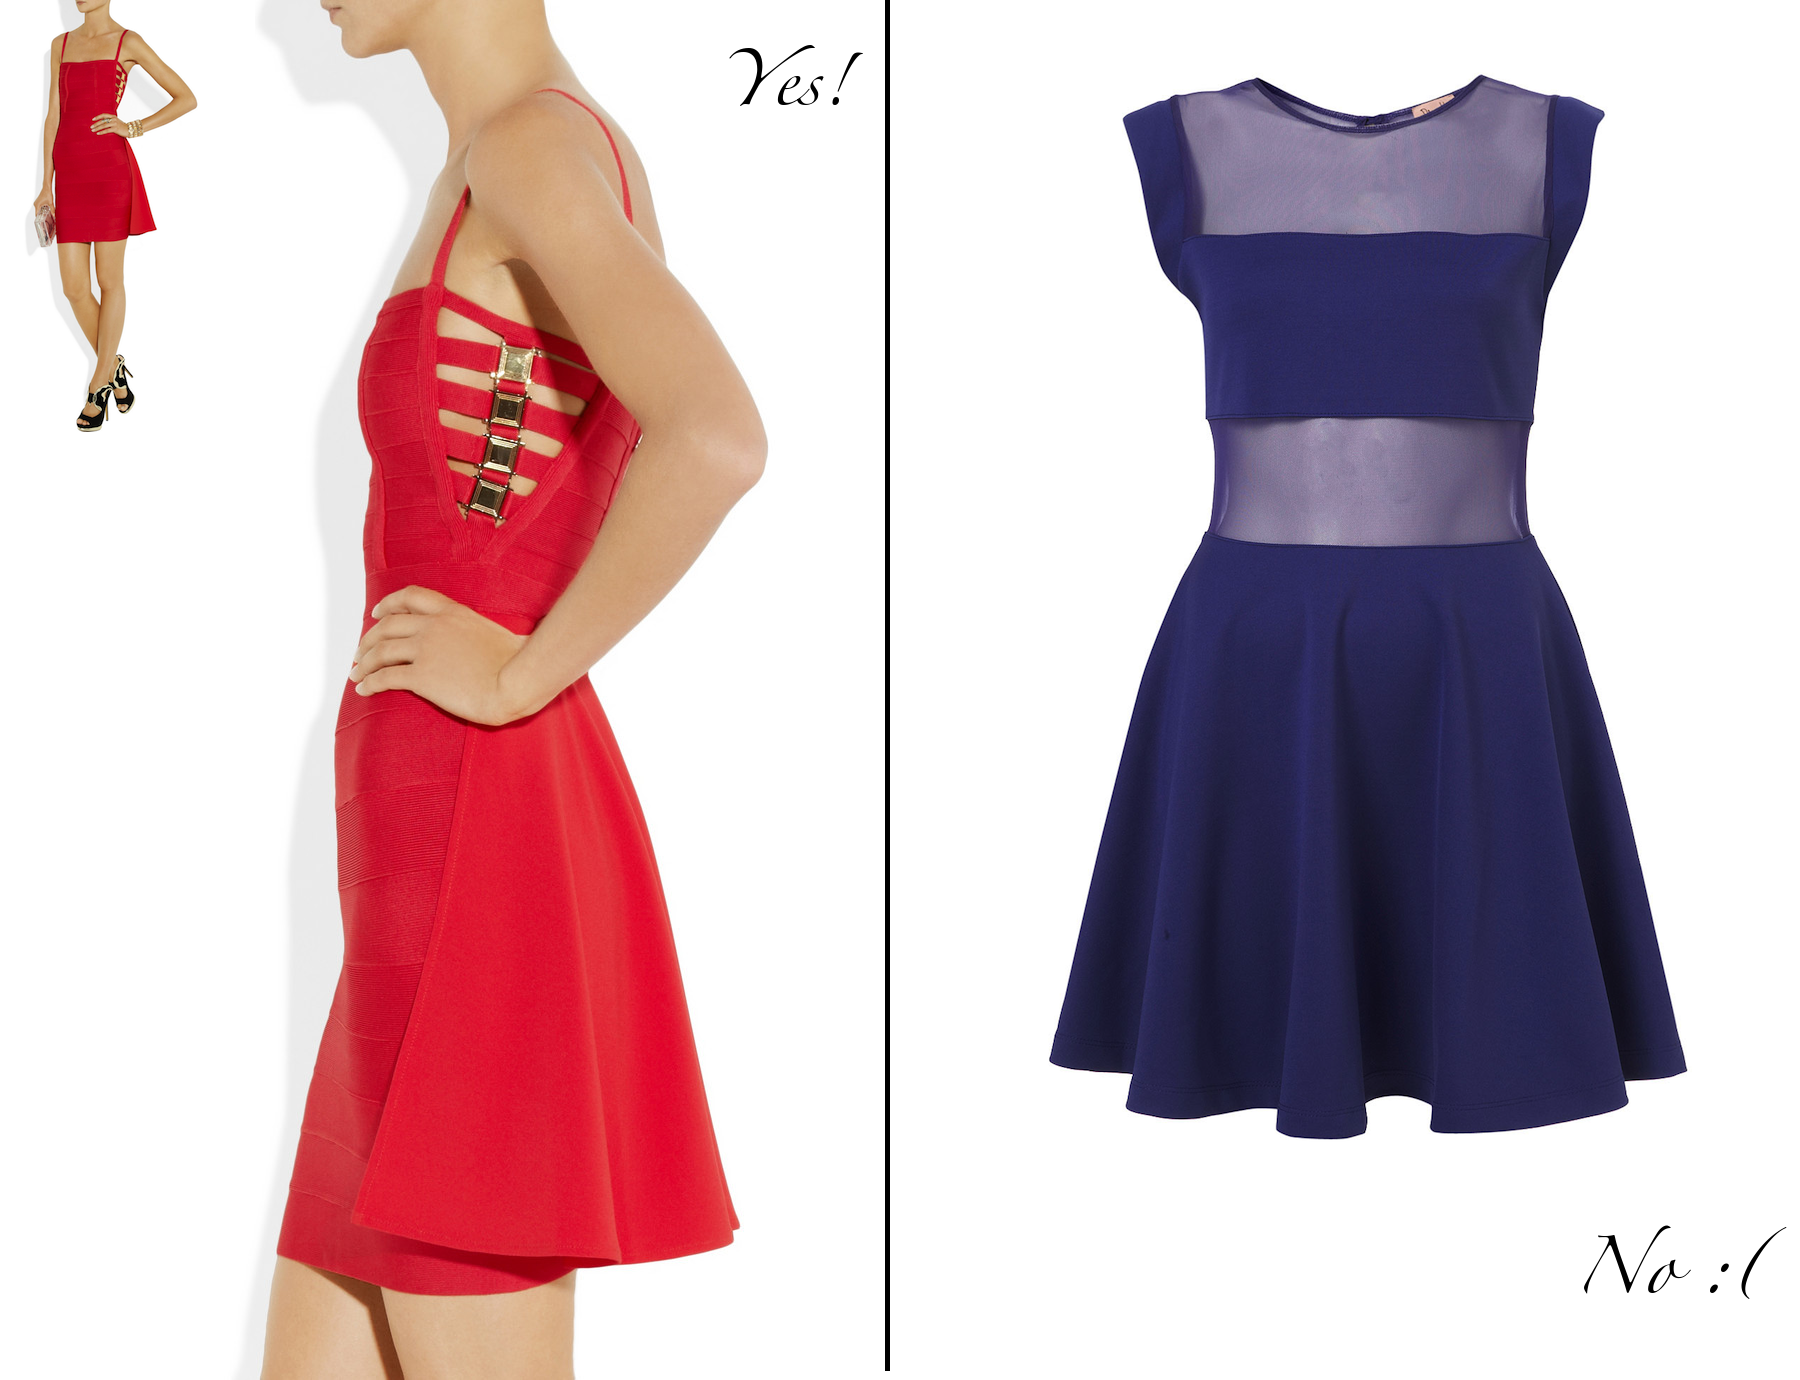 What-not-to-wear-for-wedding-guests-cutout-dresses.original